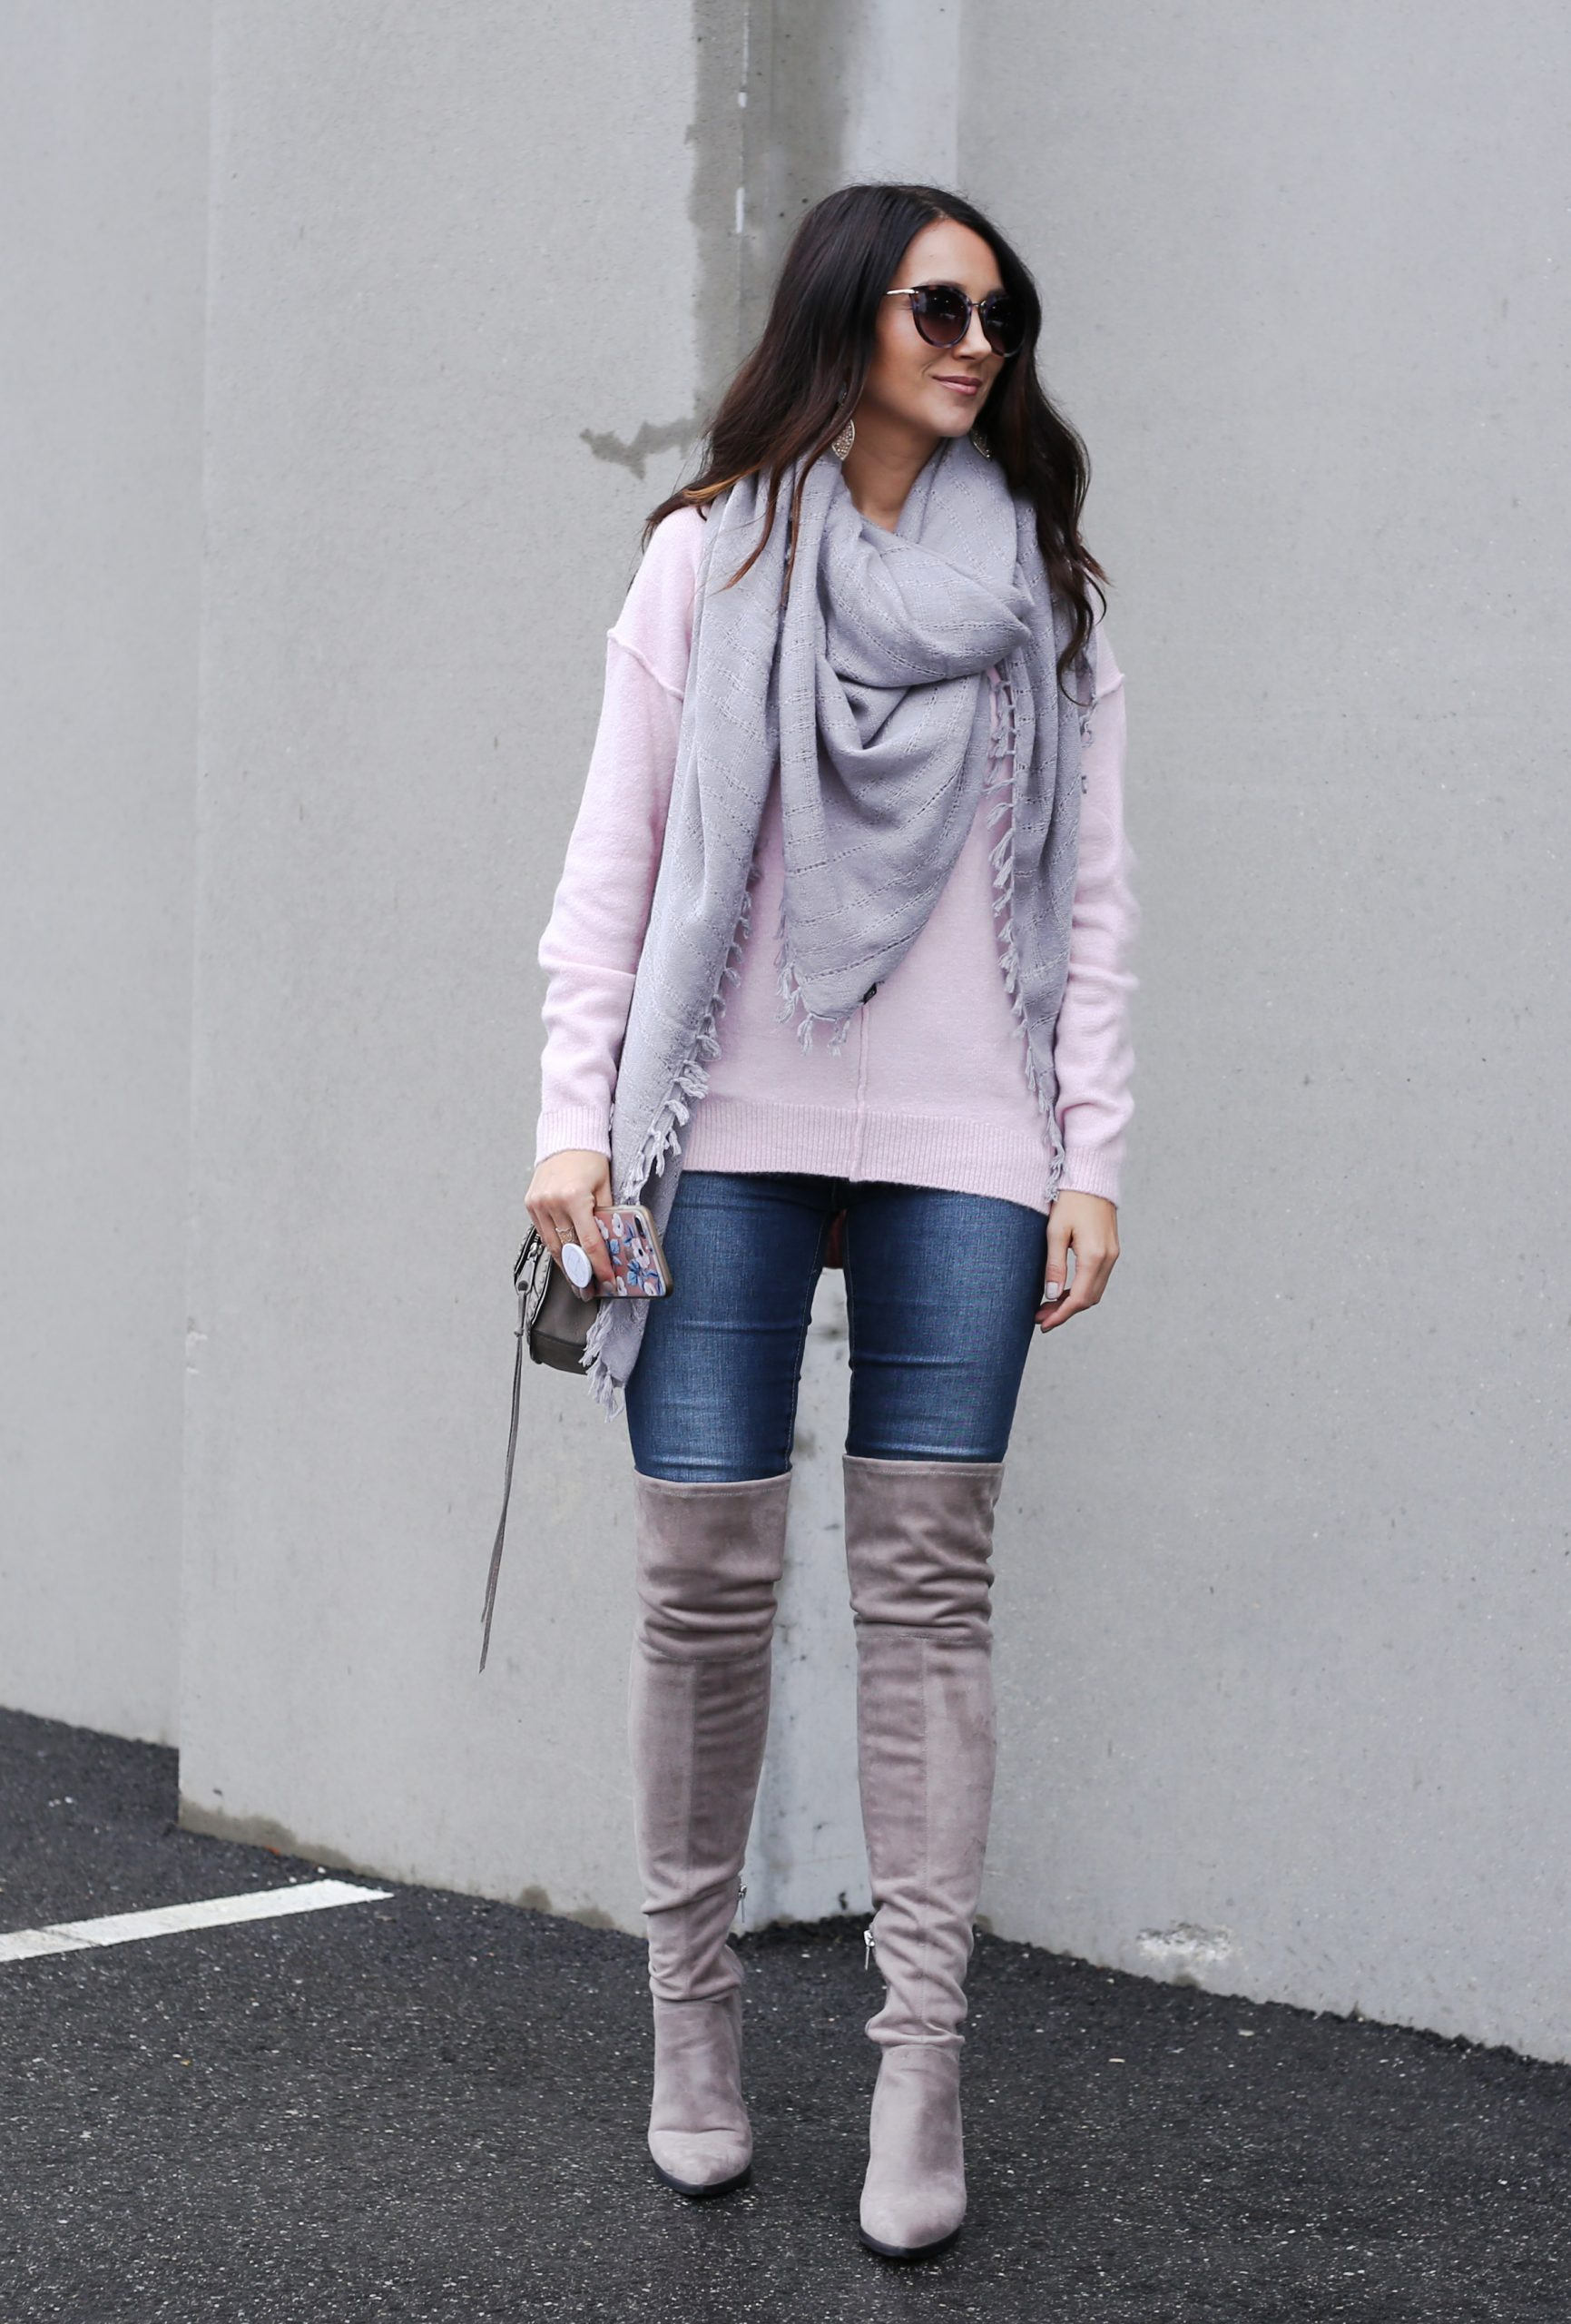 blogger Anna Monteiro wearing over the knee boots in grey blush sweater in casual holiday look